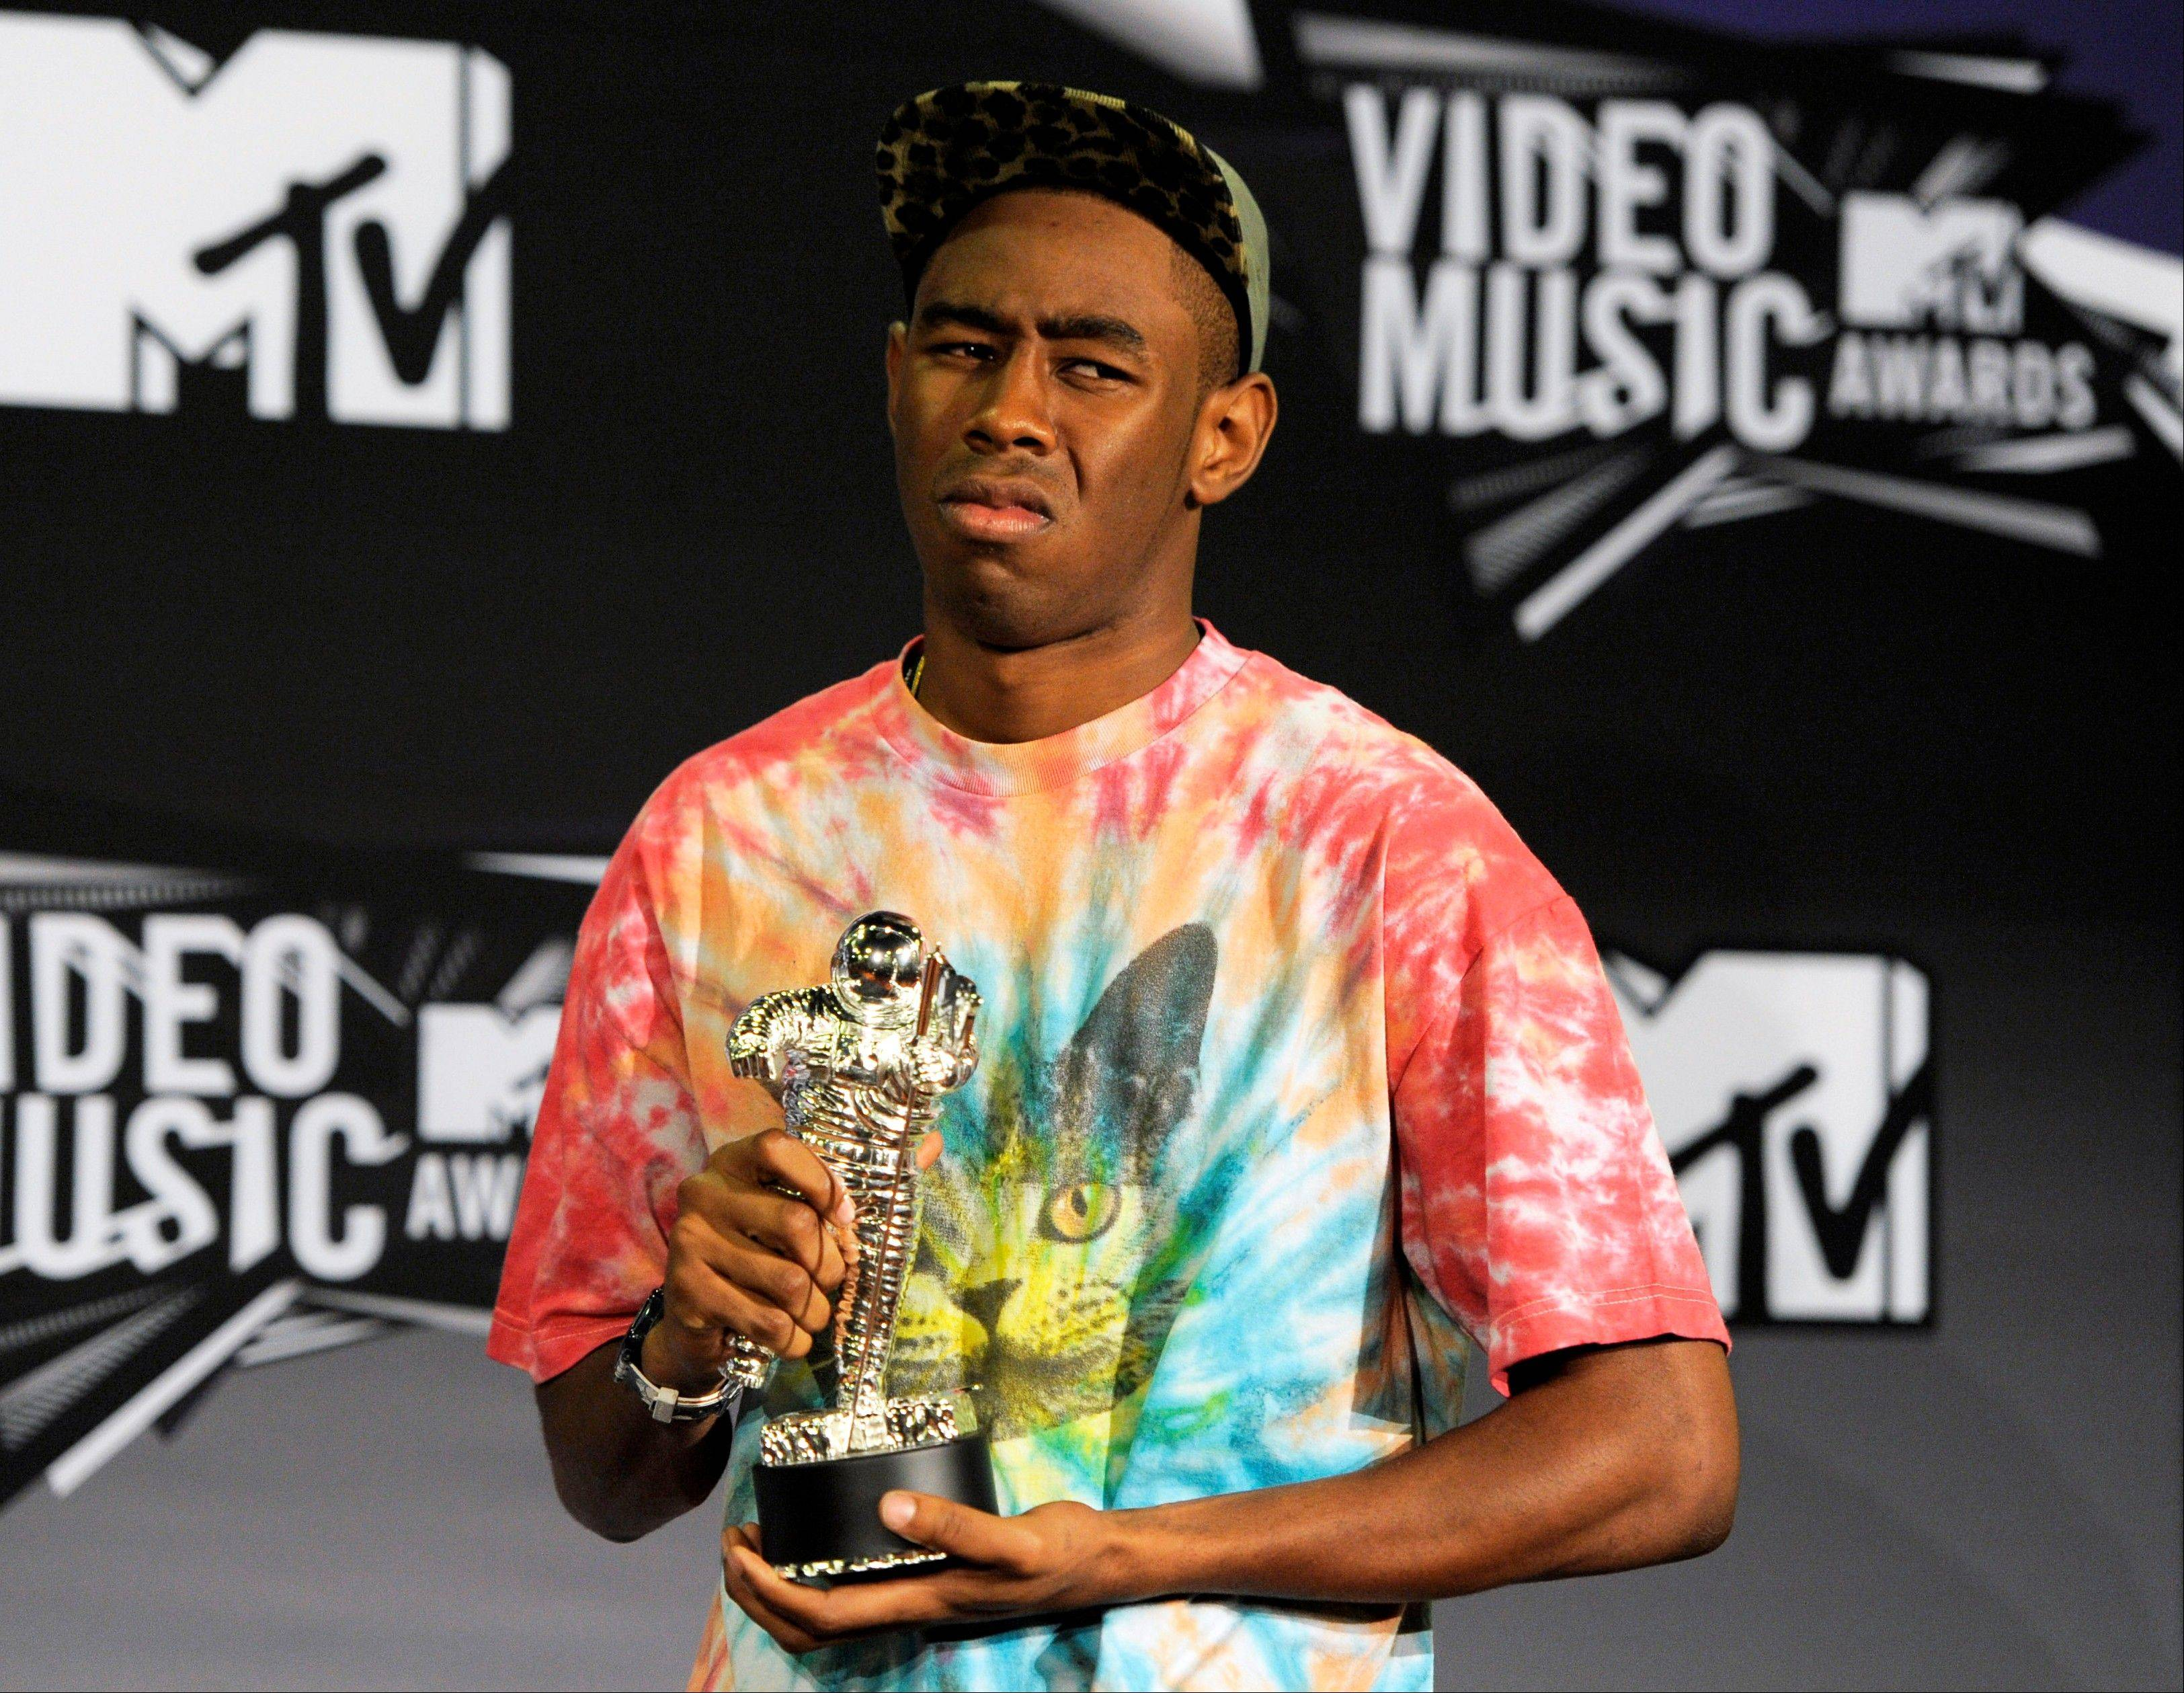 PepsiCo said it immediately pulled the 60-second Mountain Dew ad after learning that people found it was offensive. The ad was part of a series developed by African-American rapper Tyler, The Creator, seen here.